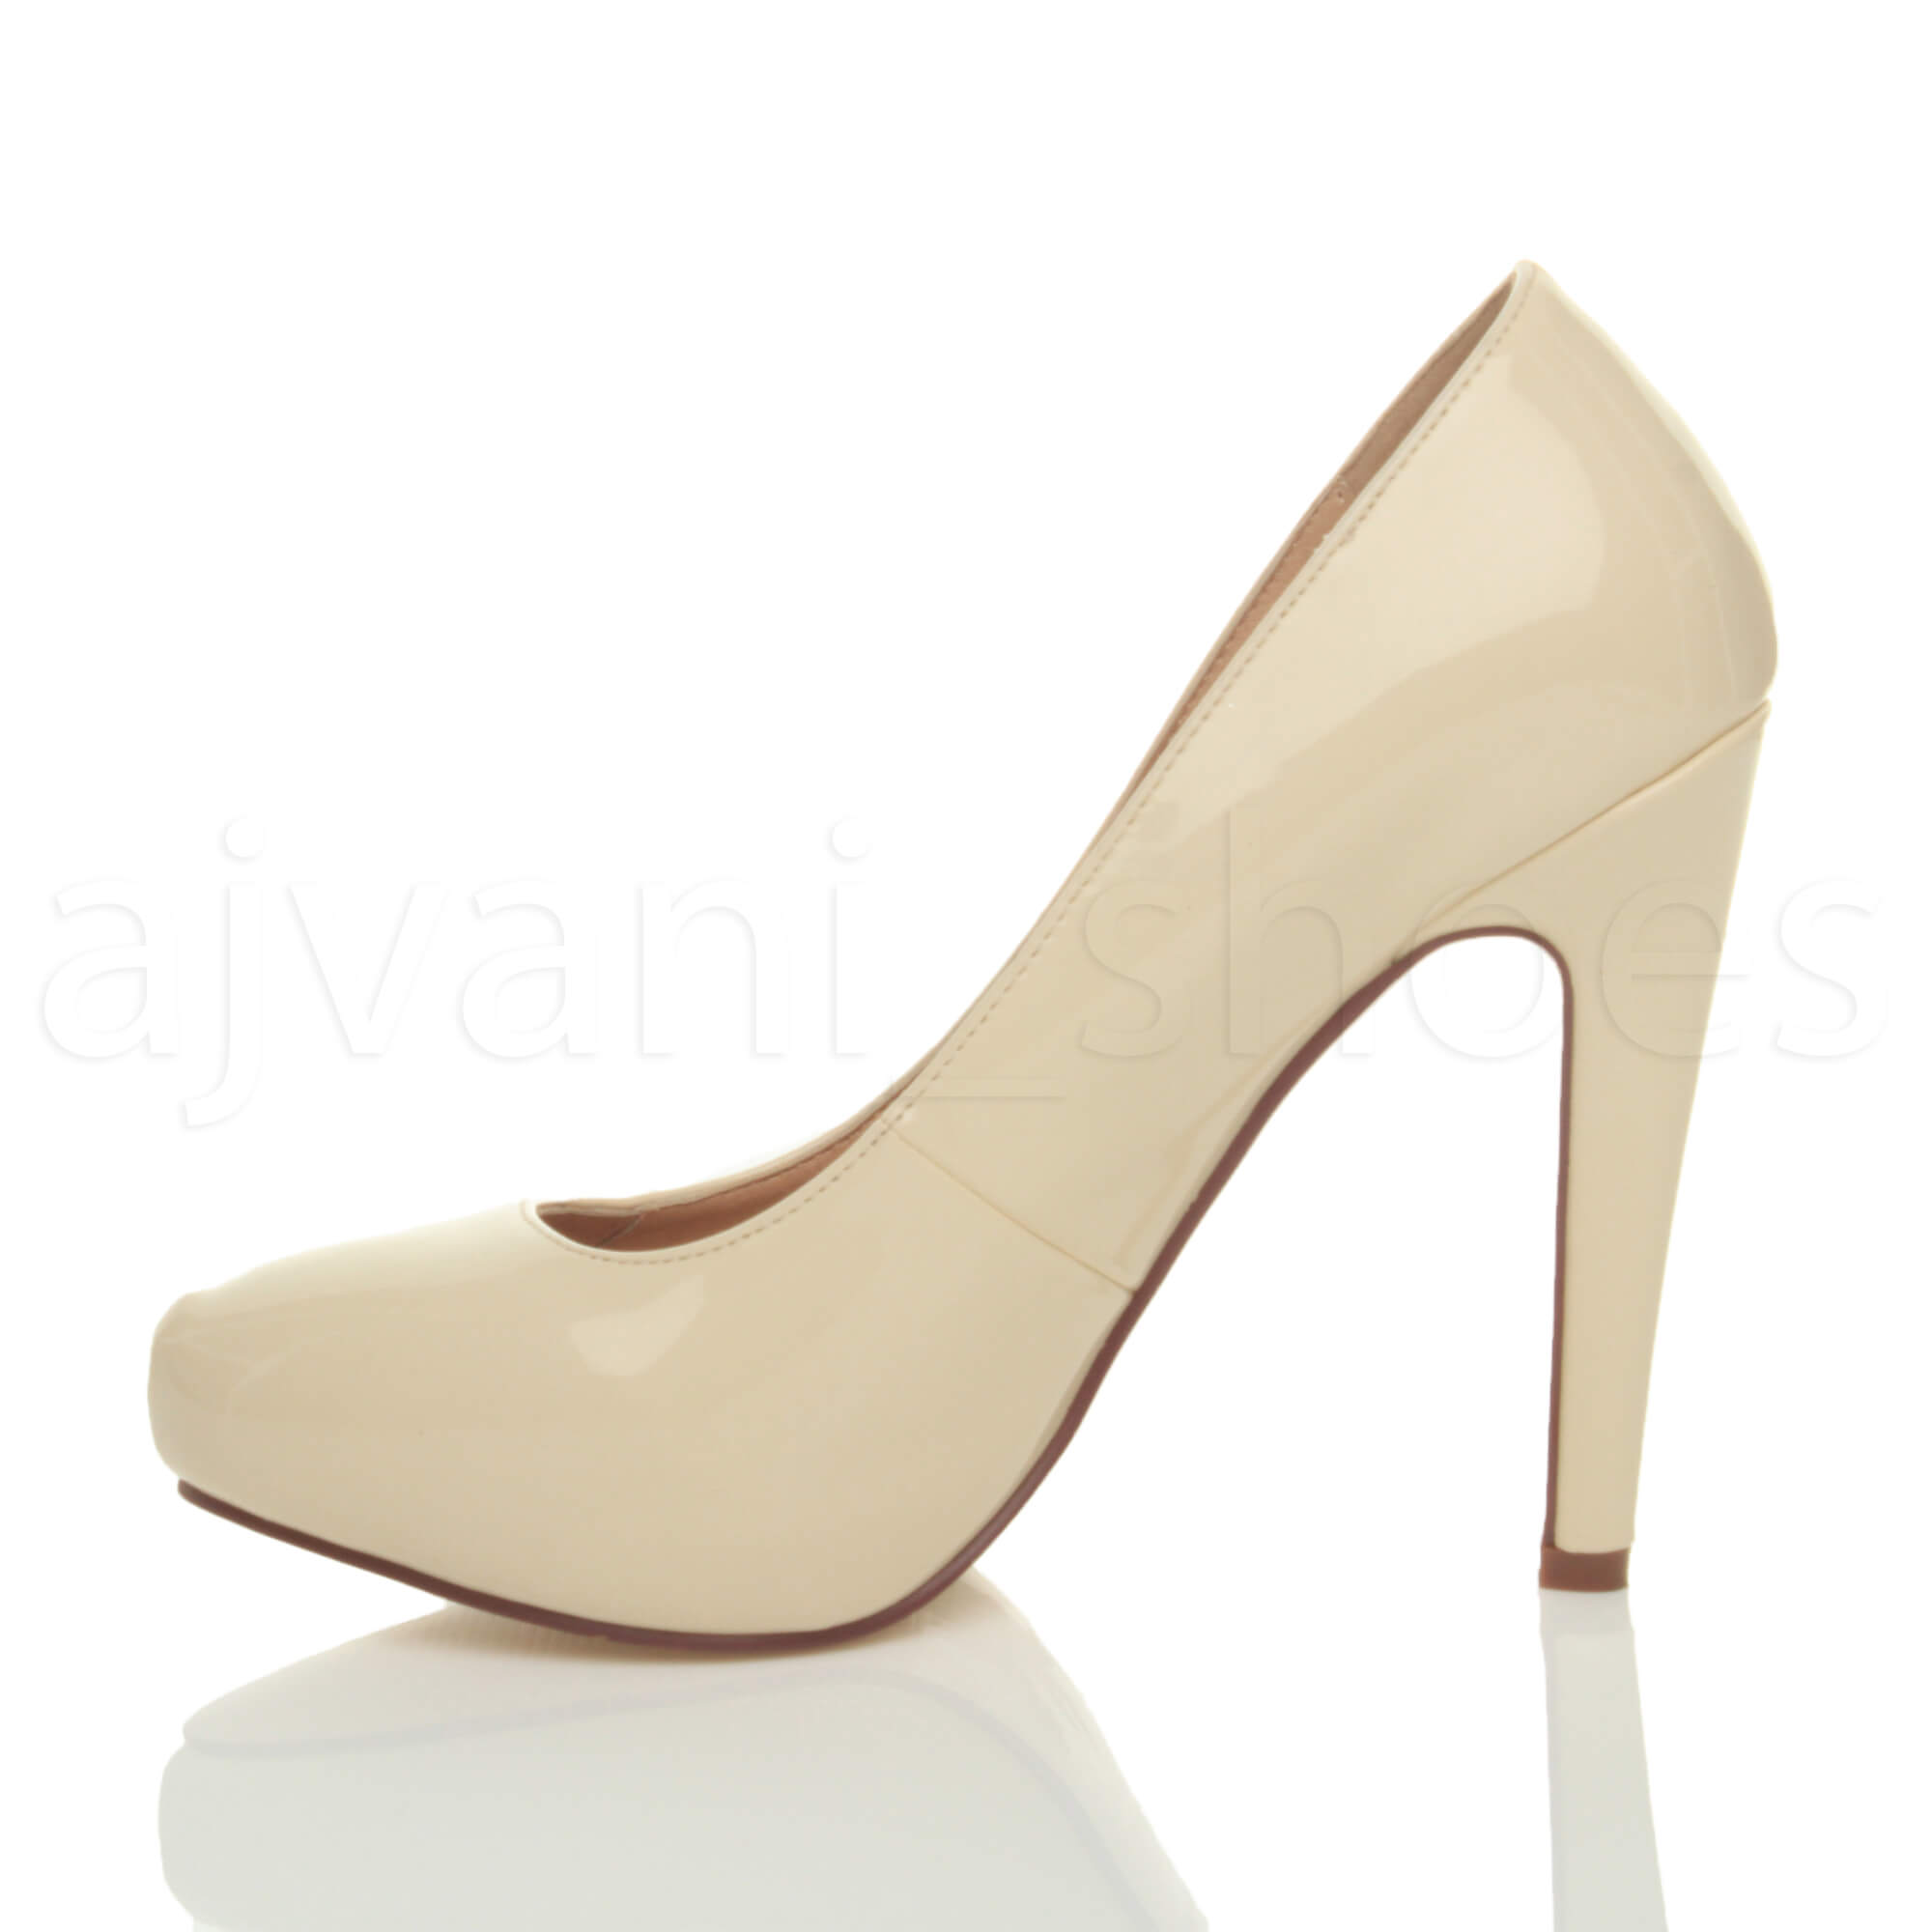 WOMENS-LADIES-HIGH-HEEL-CONCEALED-PLATFORM-COURT-SHOES-PARTY-PROM-PUMPS-SIZE thumbnail 14